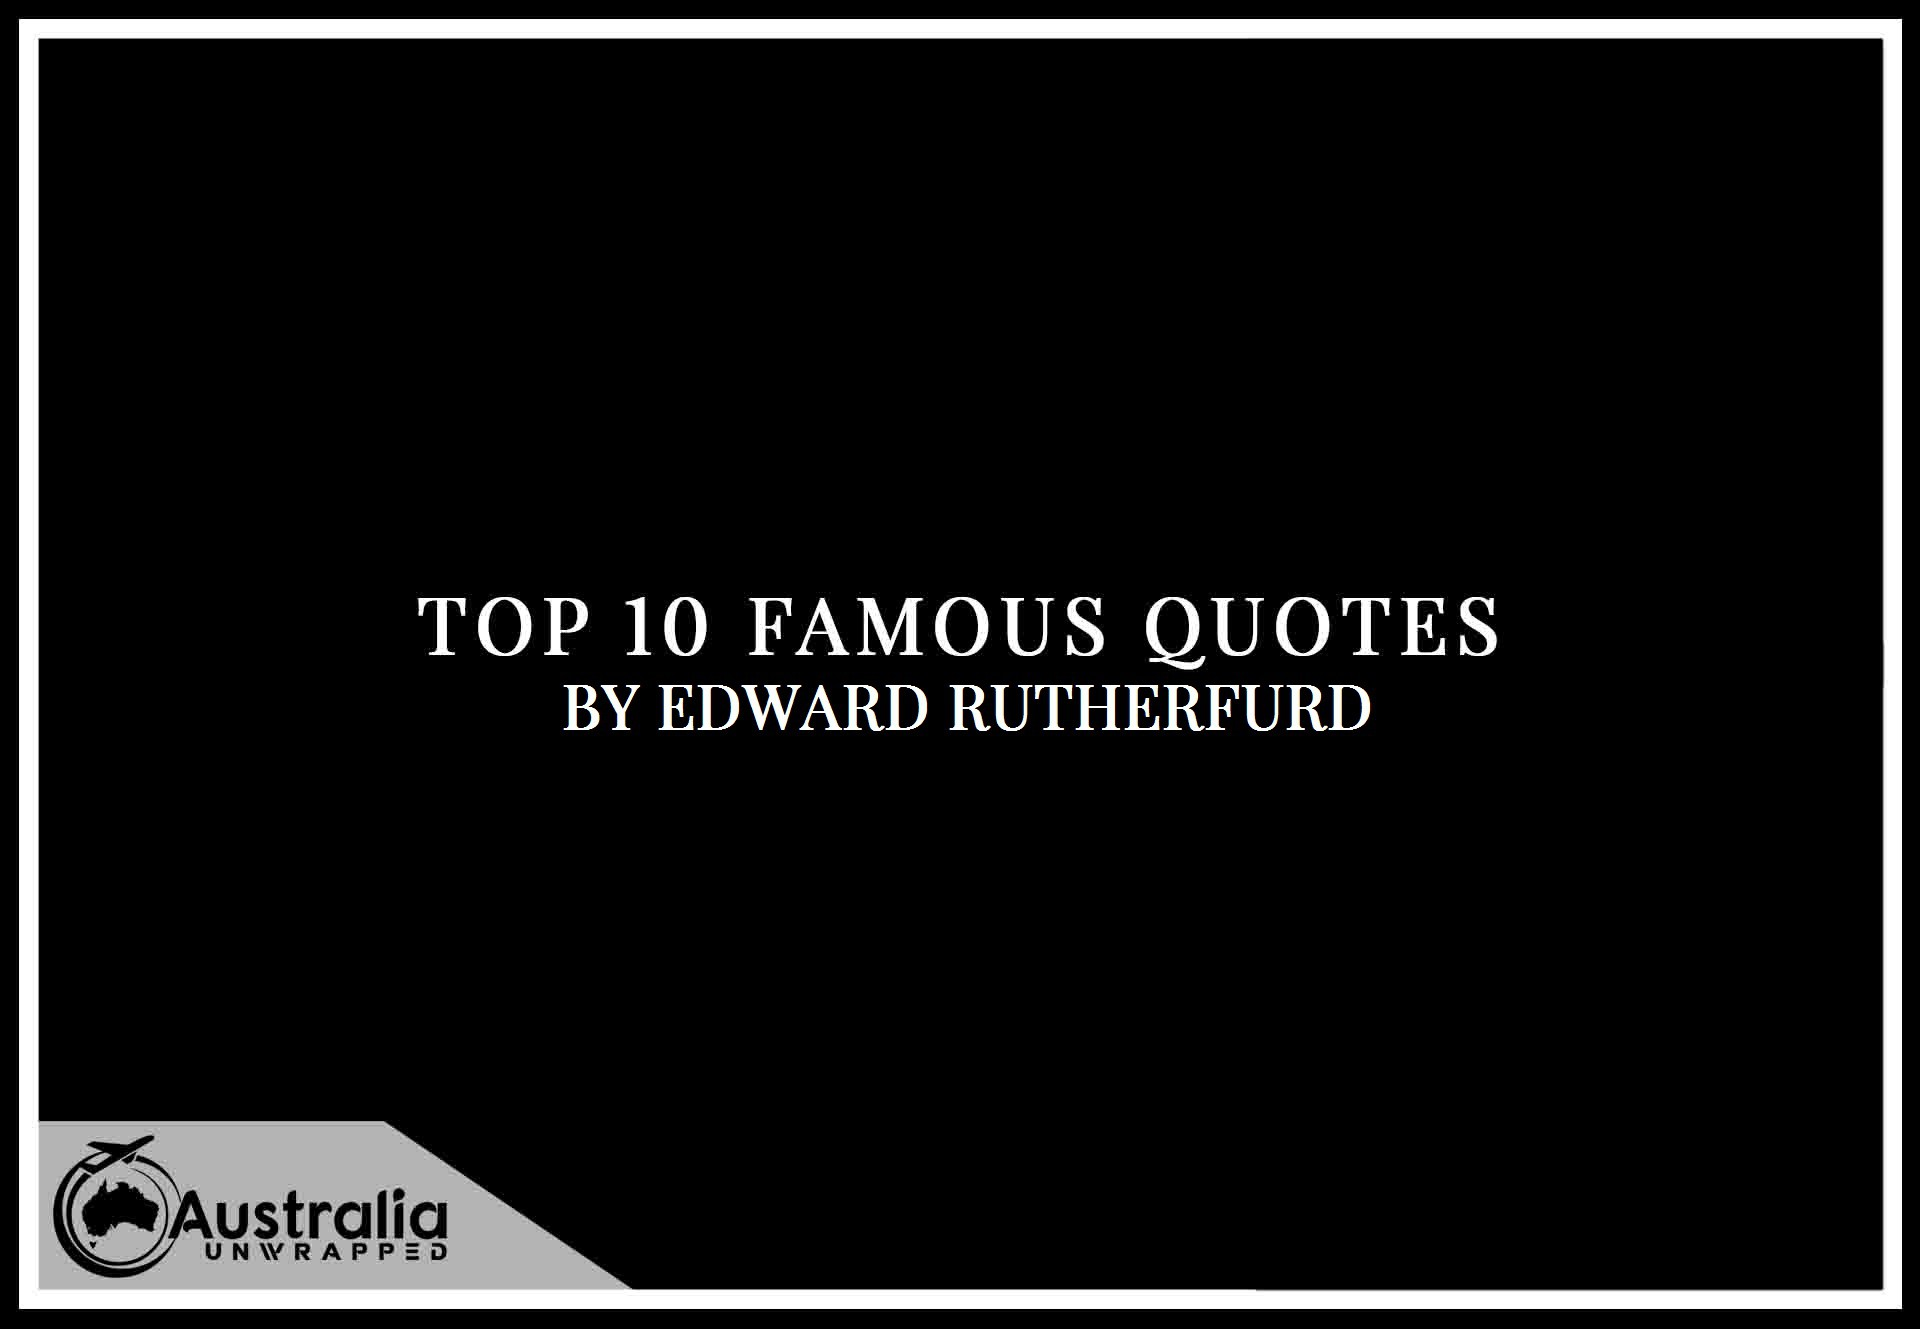 Edward Rutherfurd's Top 10 Popular and Famous Quotes